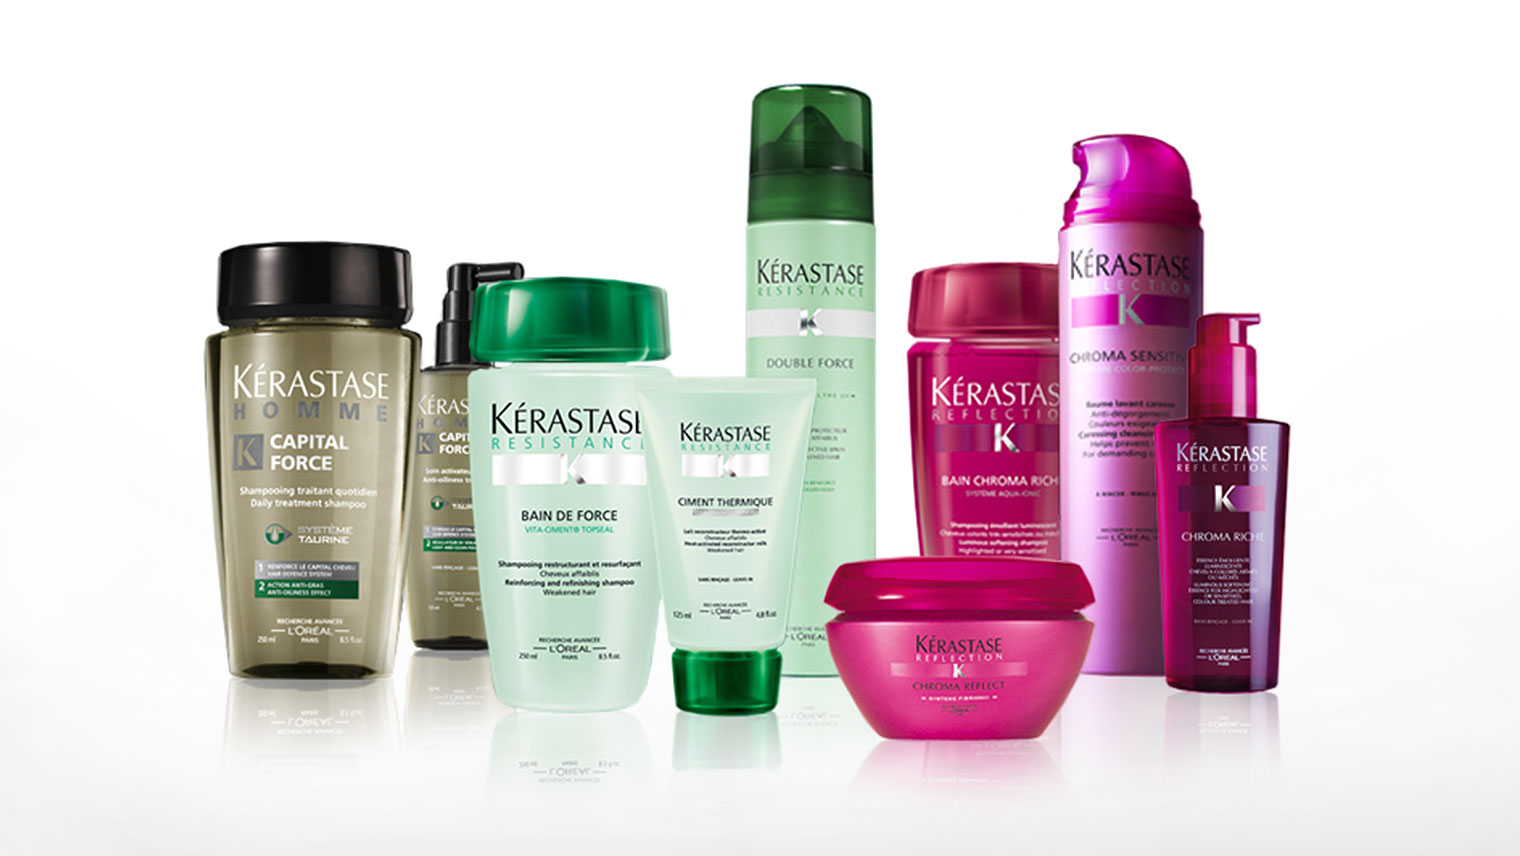 Kerastase believes that caring for the beauty of the scalp and hair is just as important as caring for the beauty of the skin. Renowned throughout the world, Kerastase has become the expert brand in luxury haircare experiences.